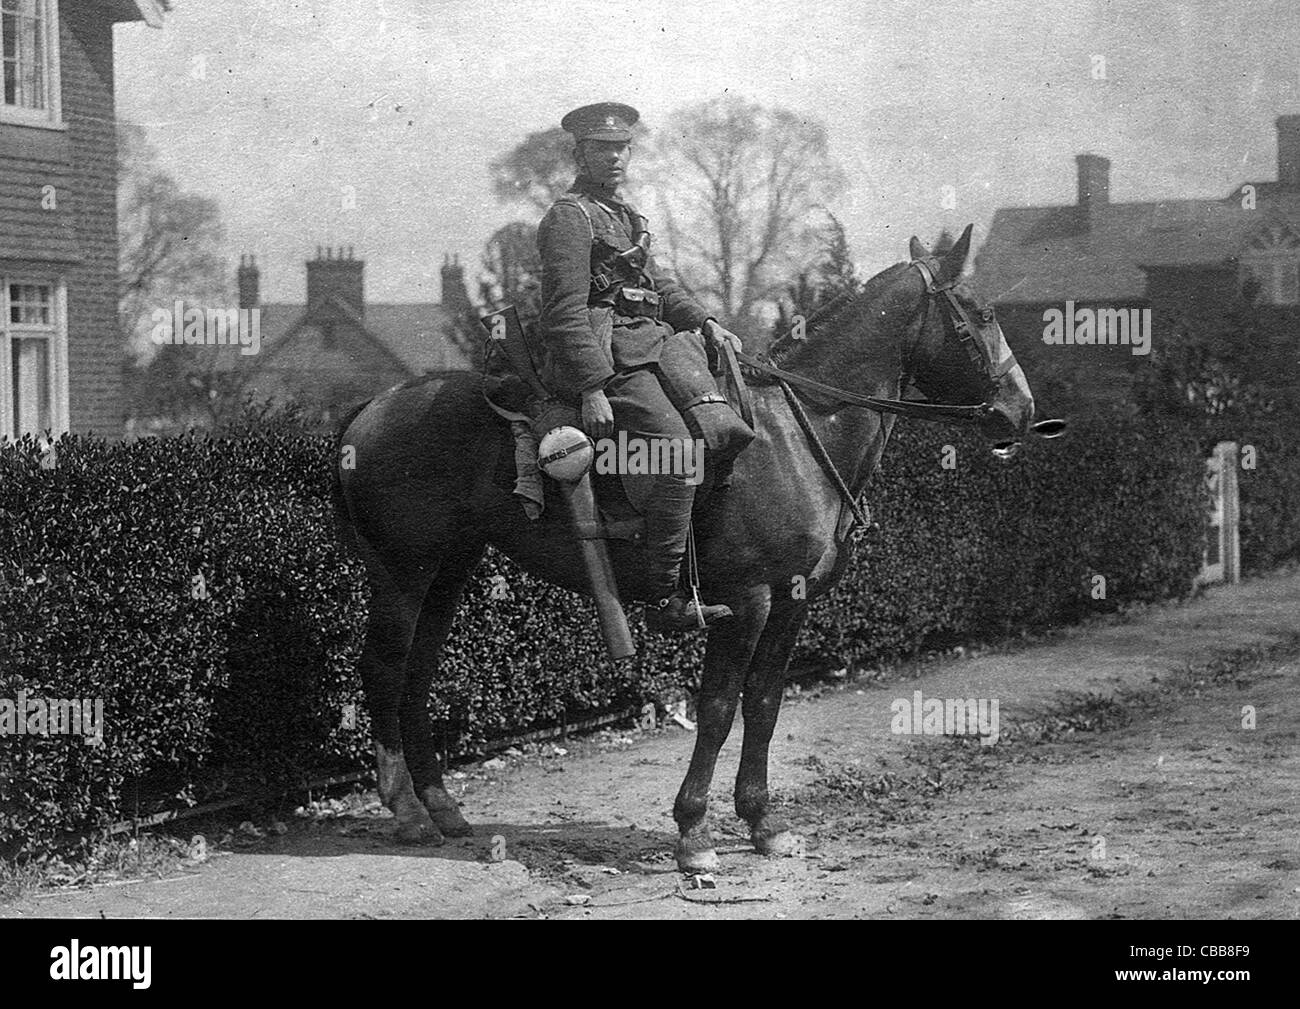 A WW1 mounted  British cavalry trooper with sword and equipment - Stock Image